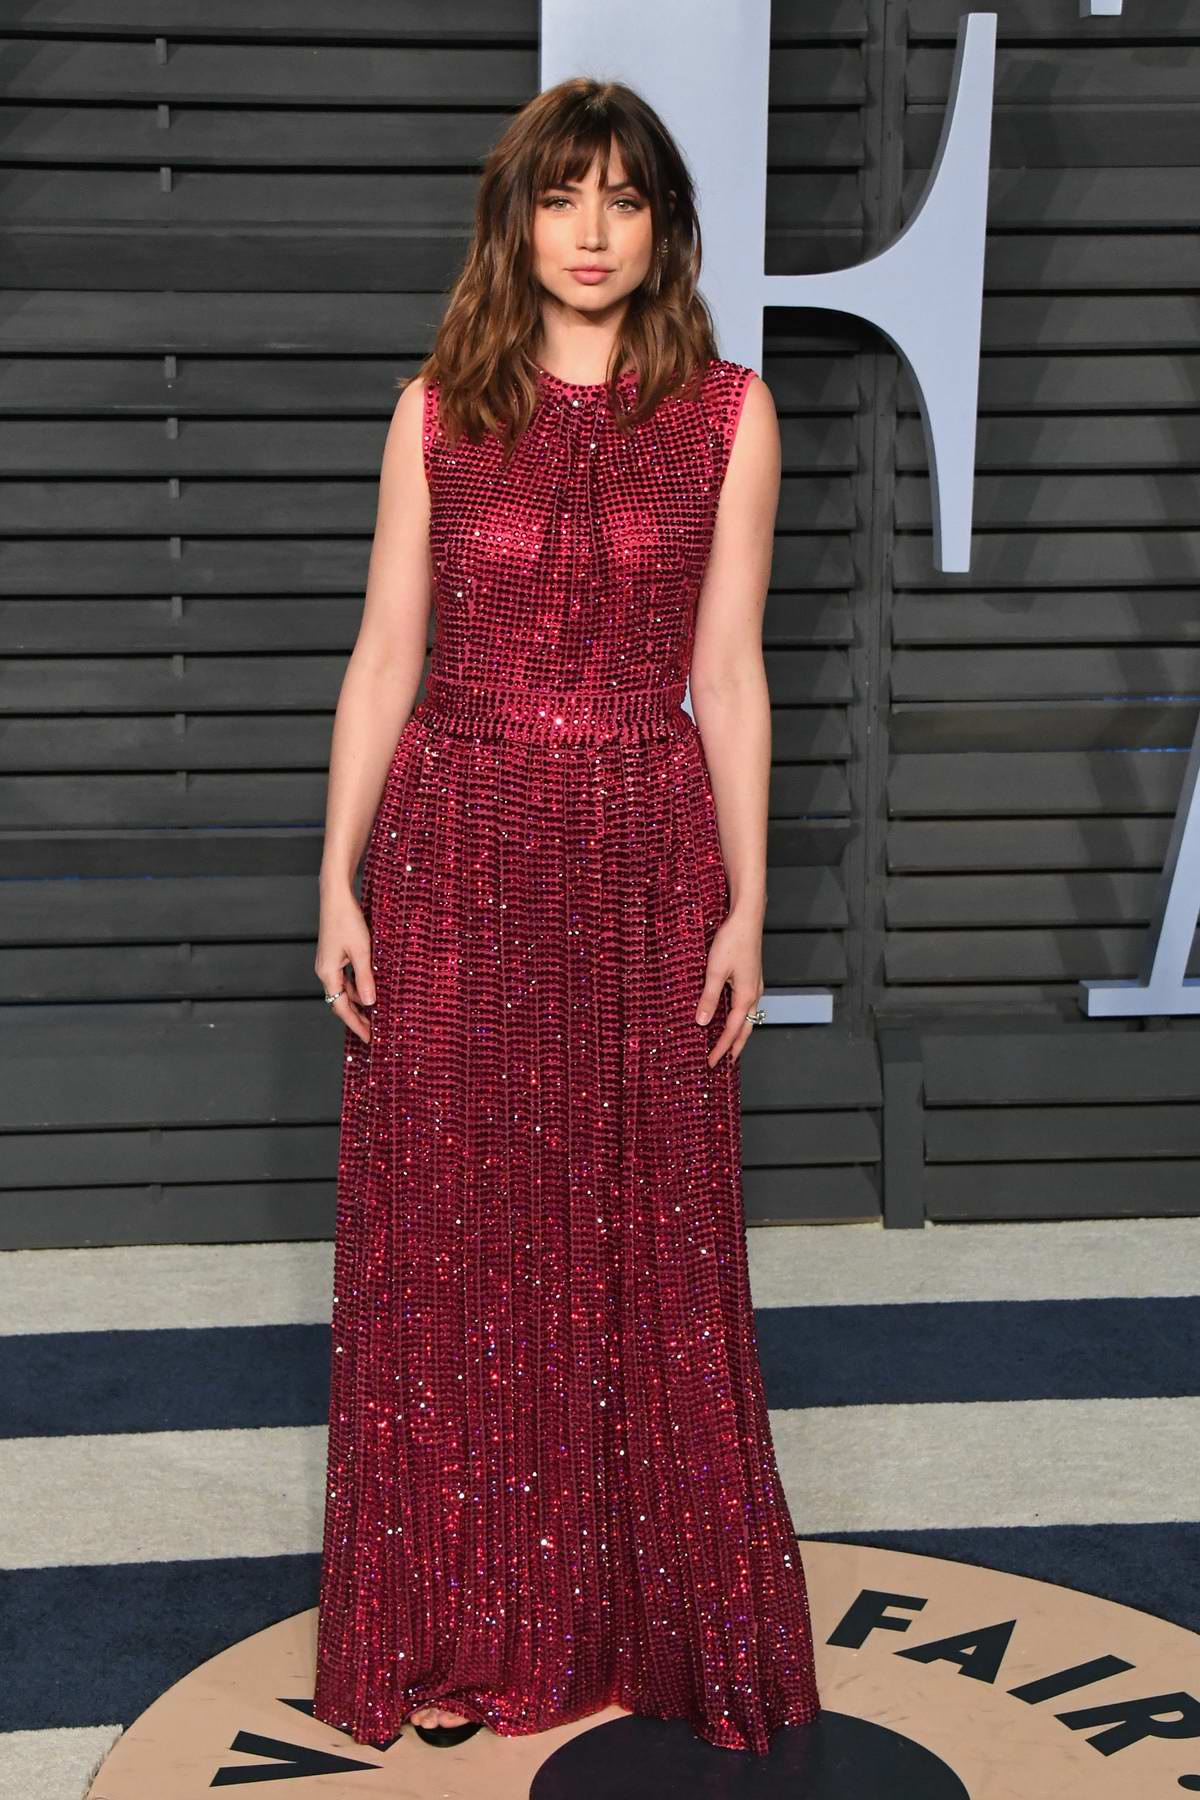 Ana de Armas attends 2018 Vanity Fair Oscar Party at the Wallis Annenberg Center for the Performing Arts in Beverly Hills, Los Angeles